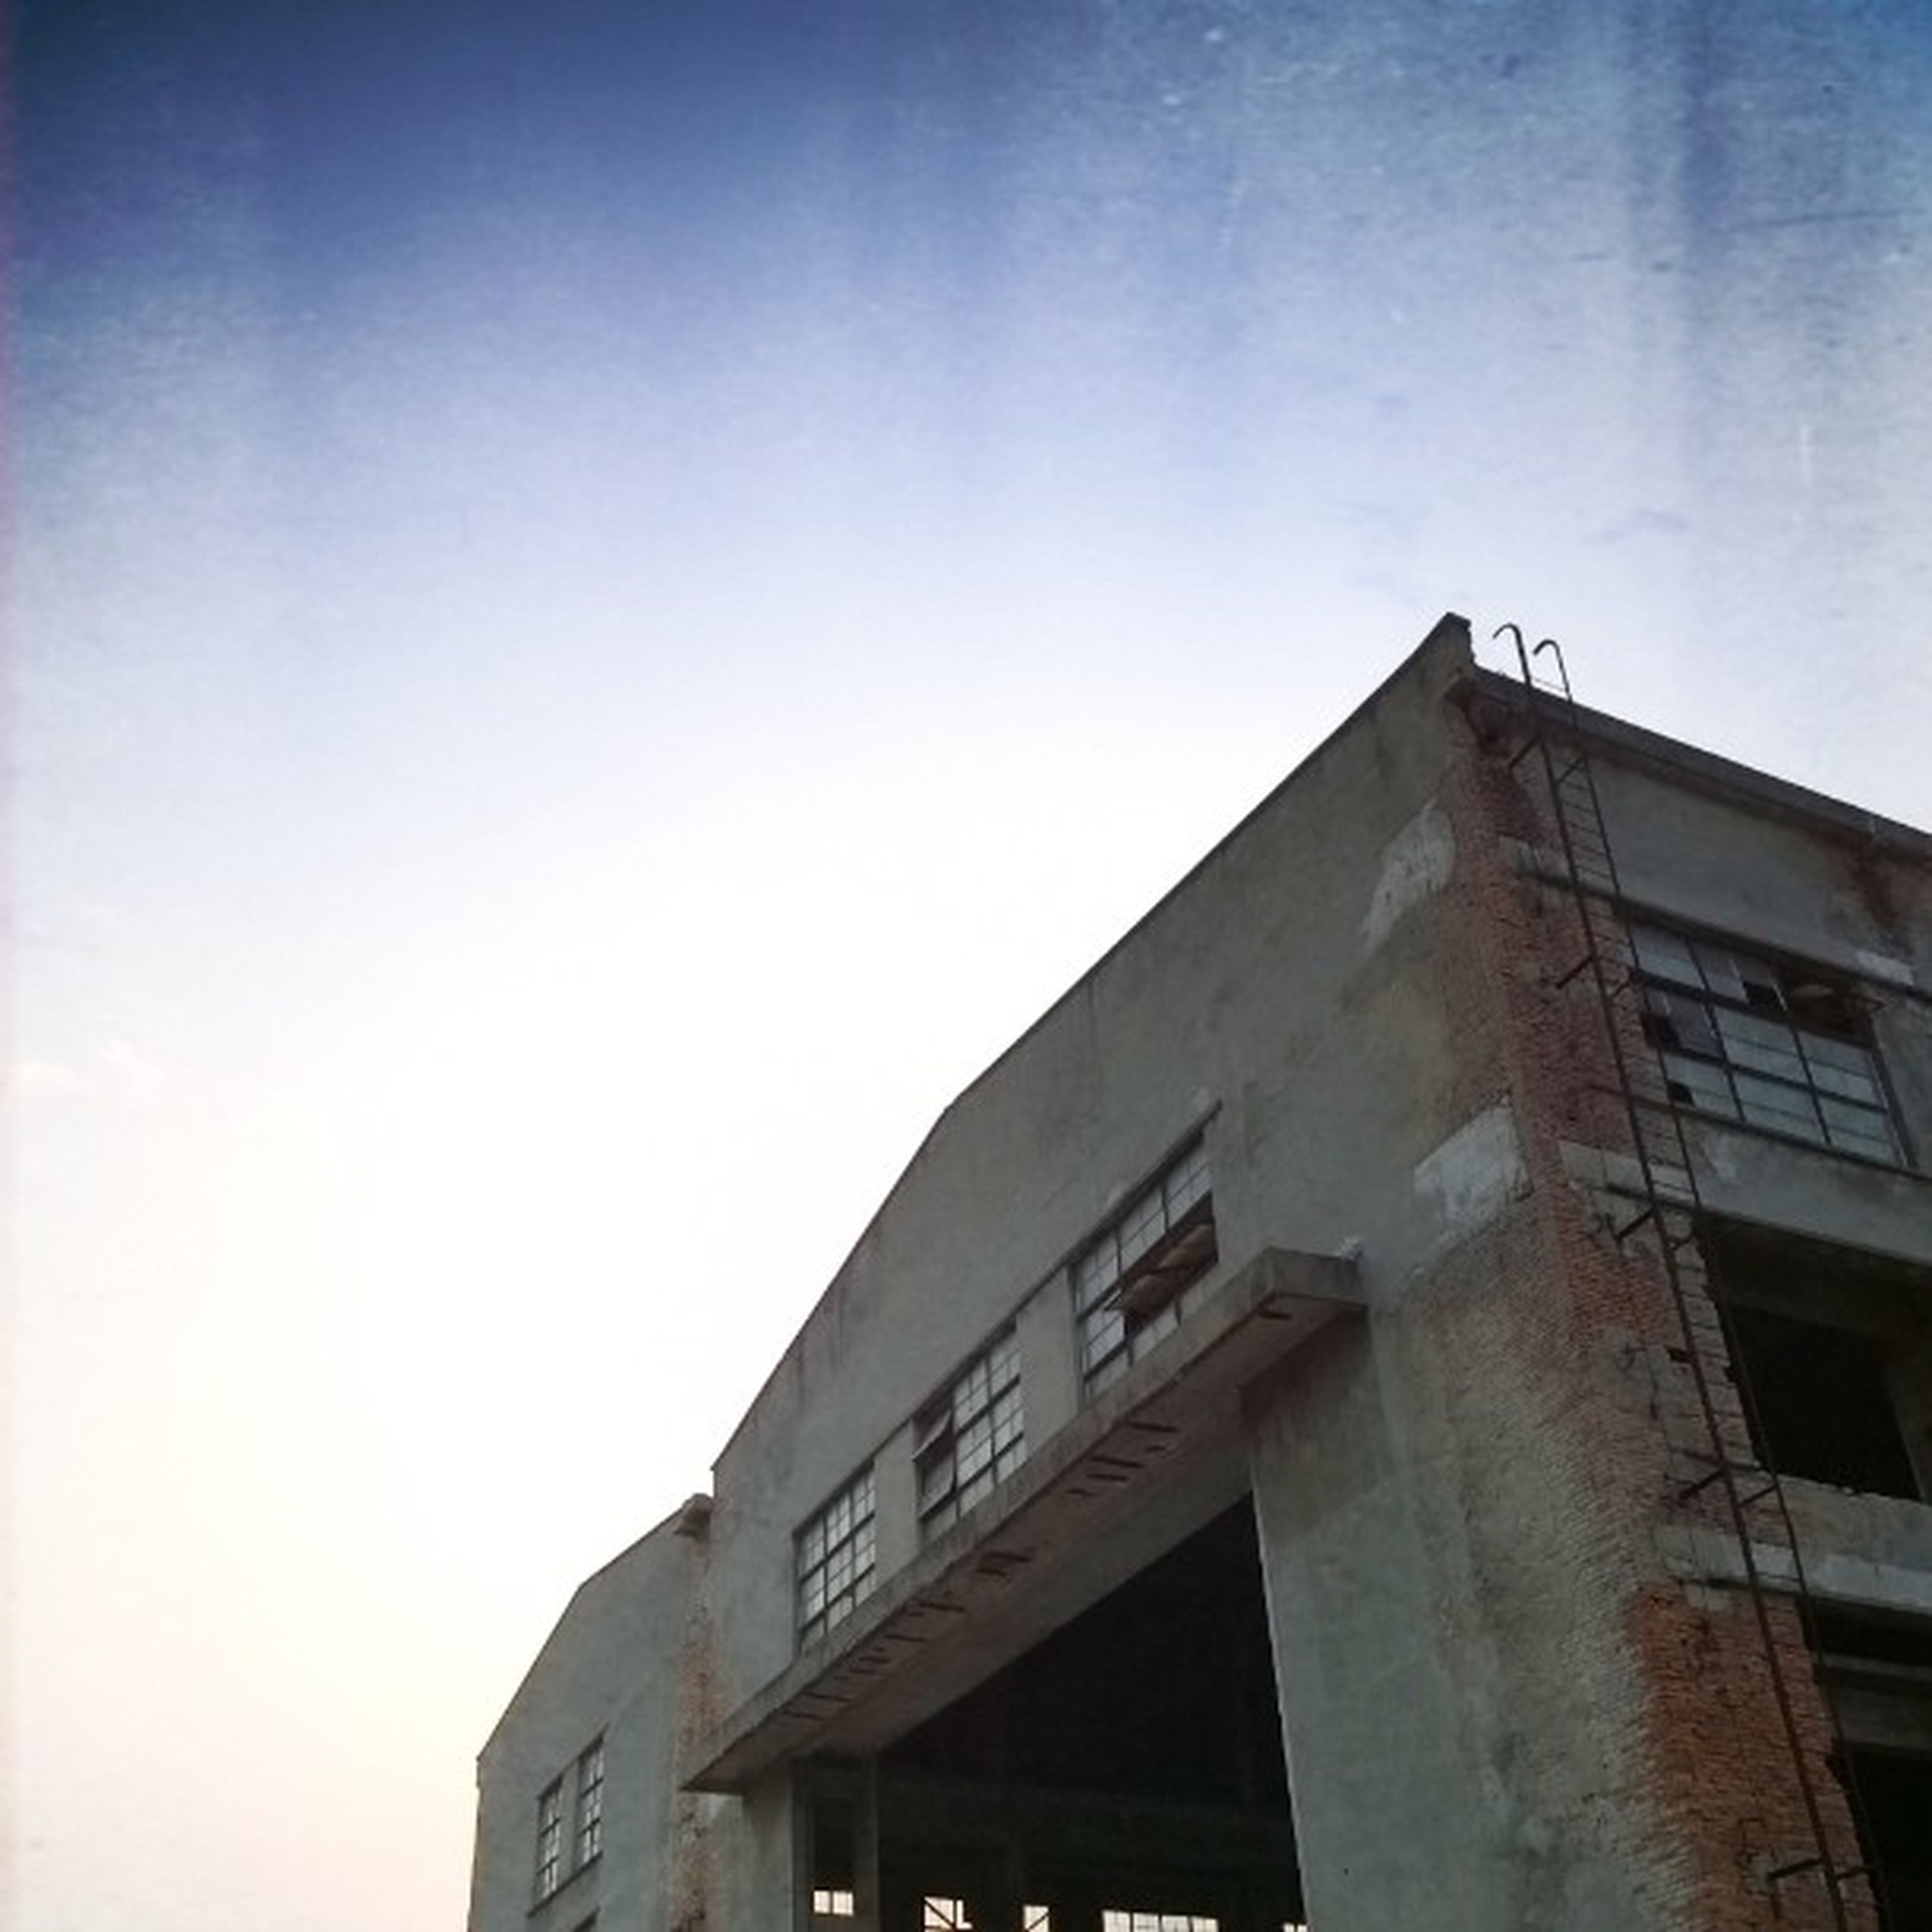 architecture, building exterior, built structure, low angle view, clear sky, window, building, residential building, residential structure, copy space, city, sky, high section, outdoors, day, no people, house, blue, balcony, apartment